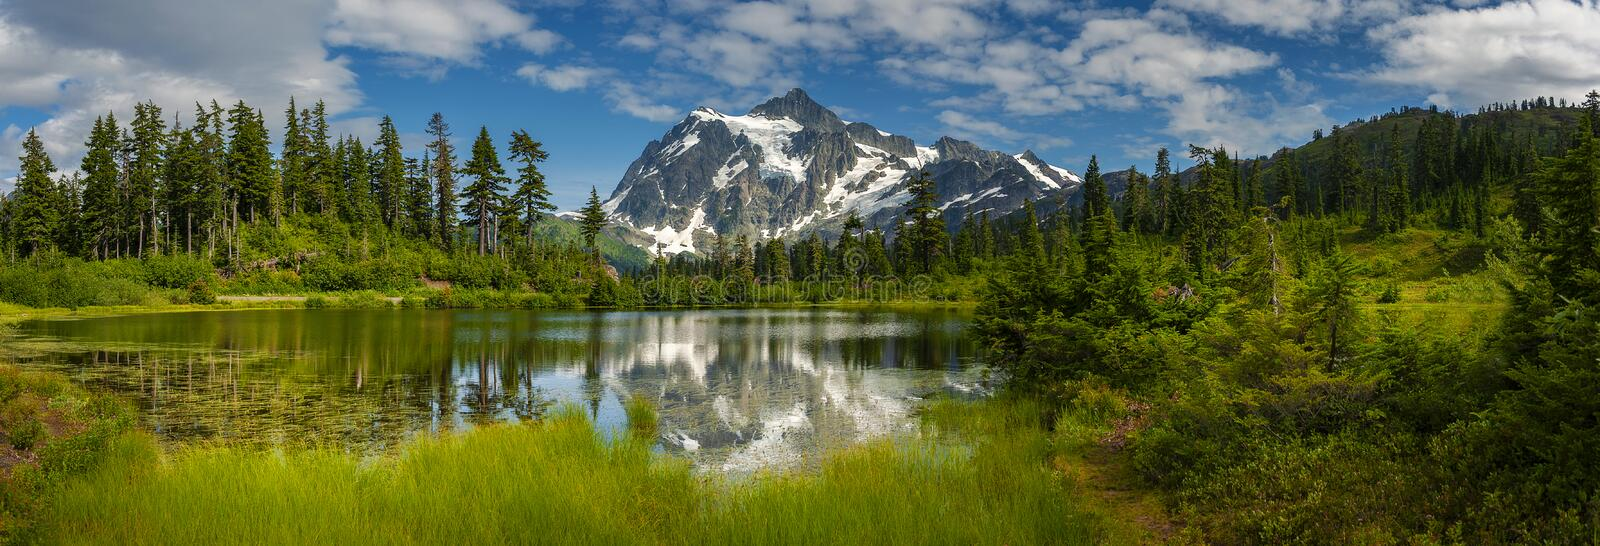 Picture Lake with Mt. Shuksan, Washington state. Picture Lake is the centerpiece of a strikingly beautiful landscape in the Heather Meadows area of the Mt royalty free stock photos